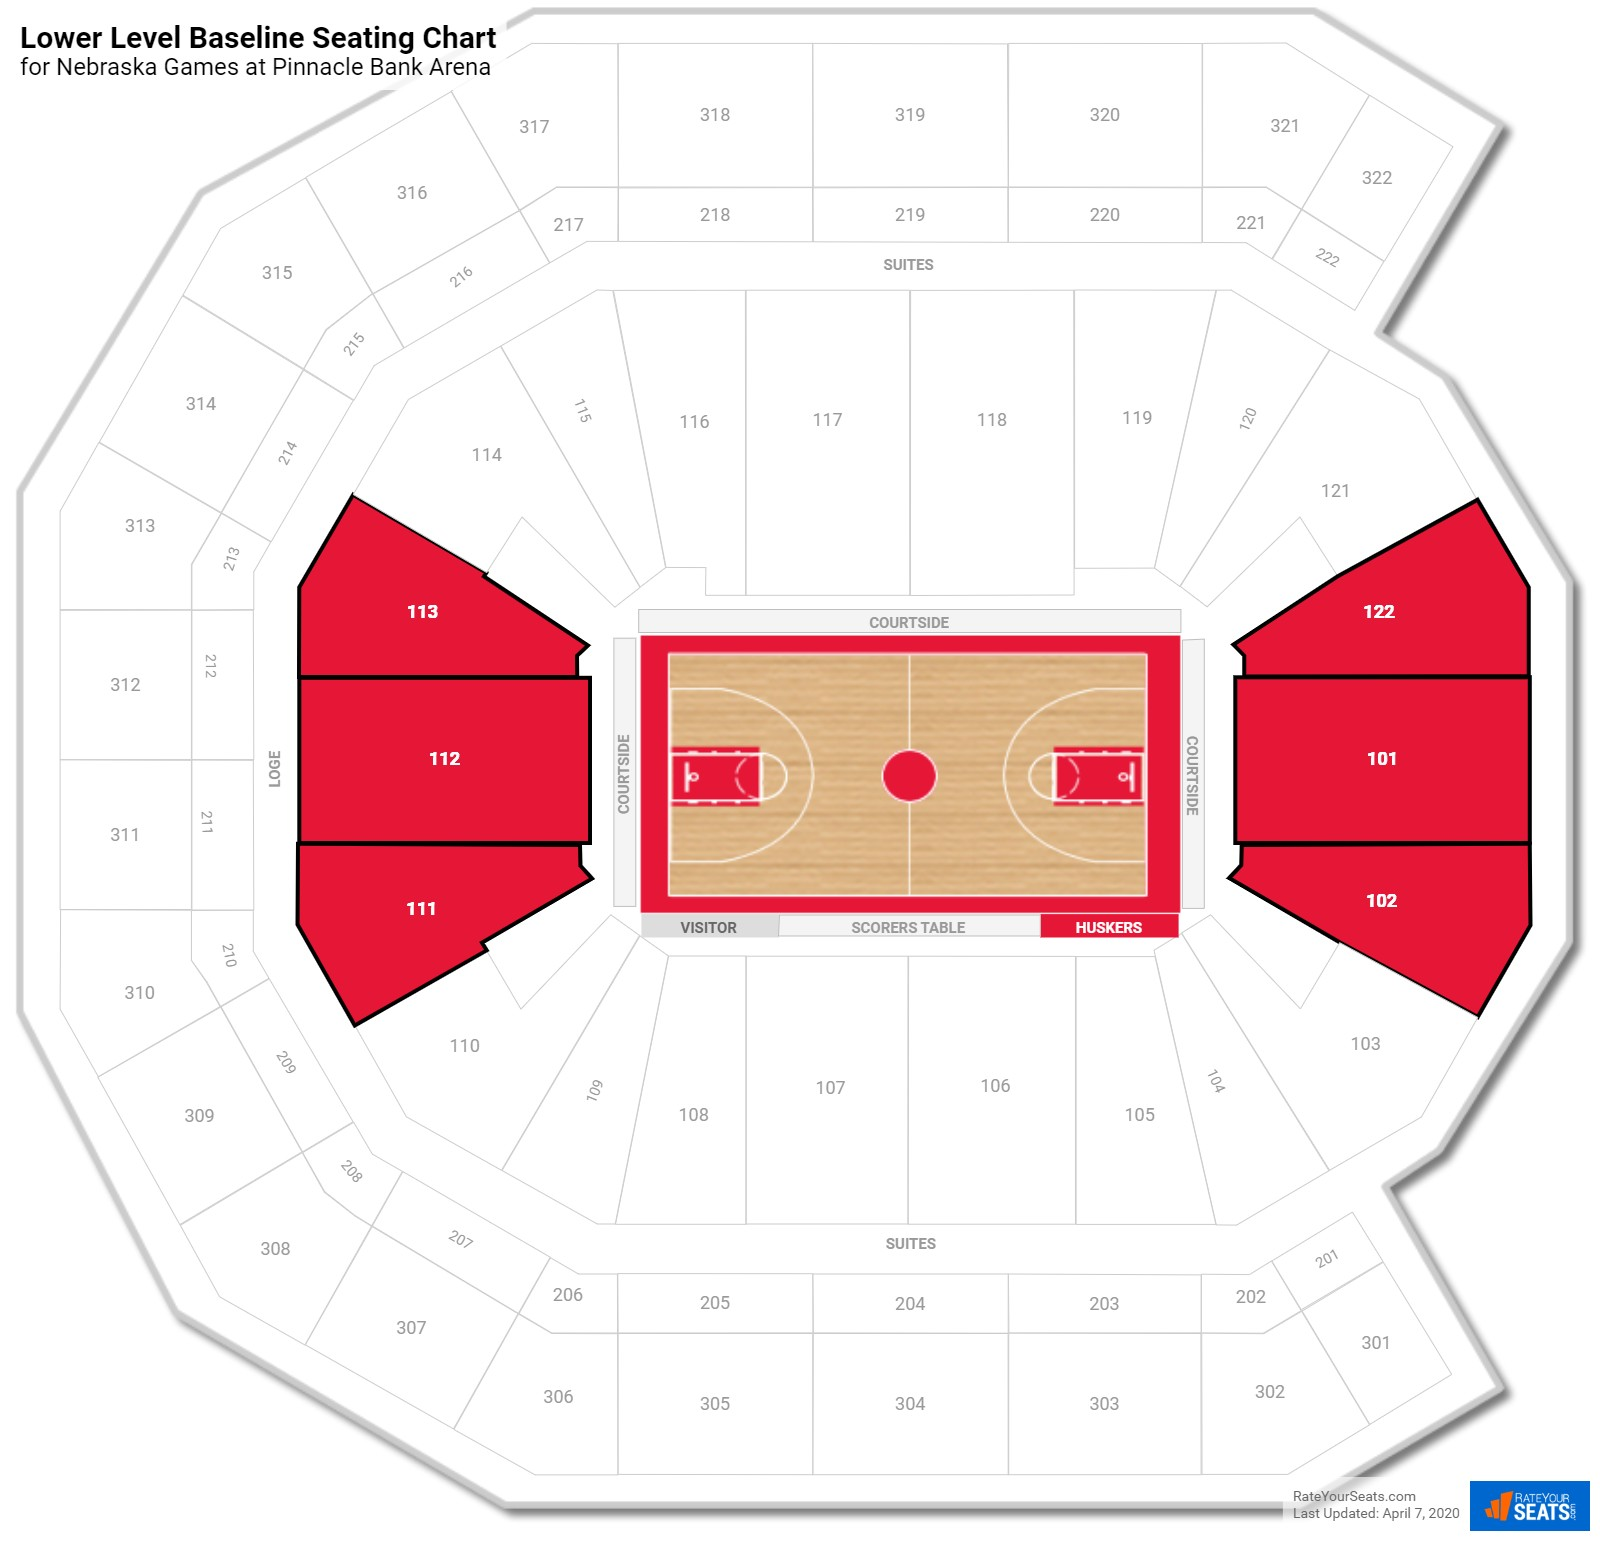 Pinnacle Bank Arena Lower Level Baseline seating chart